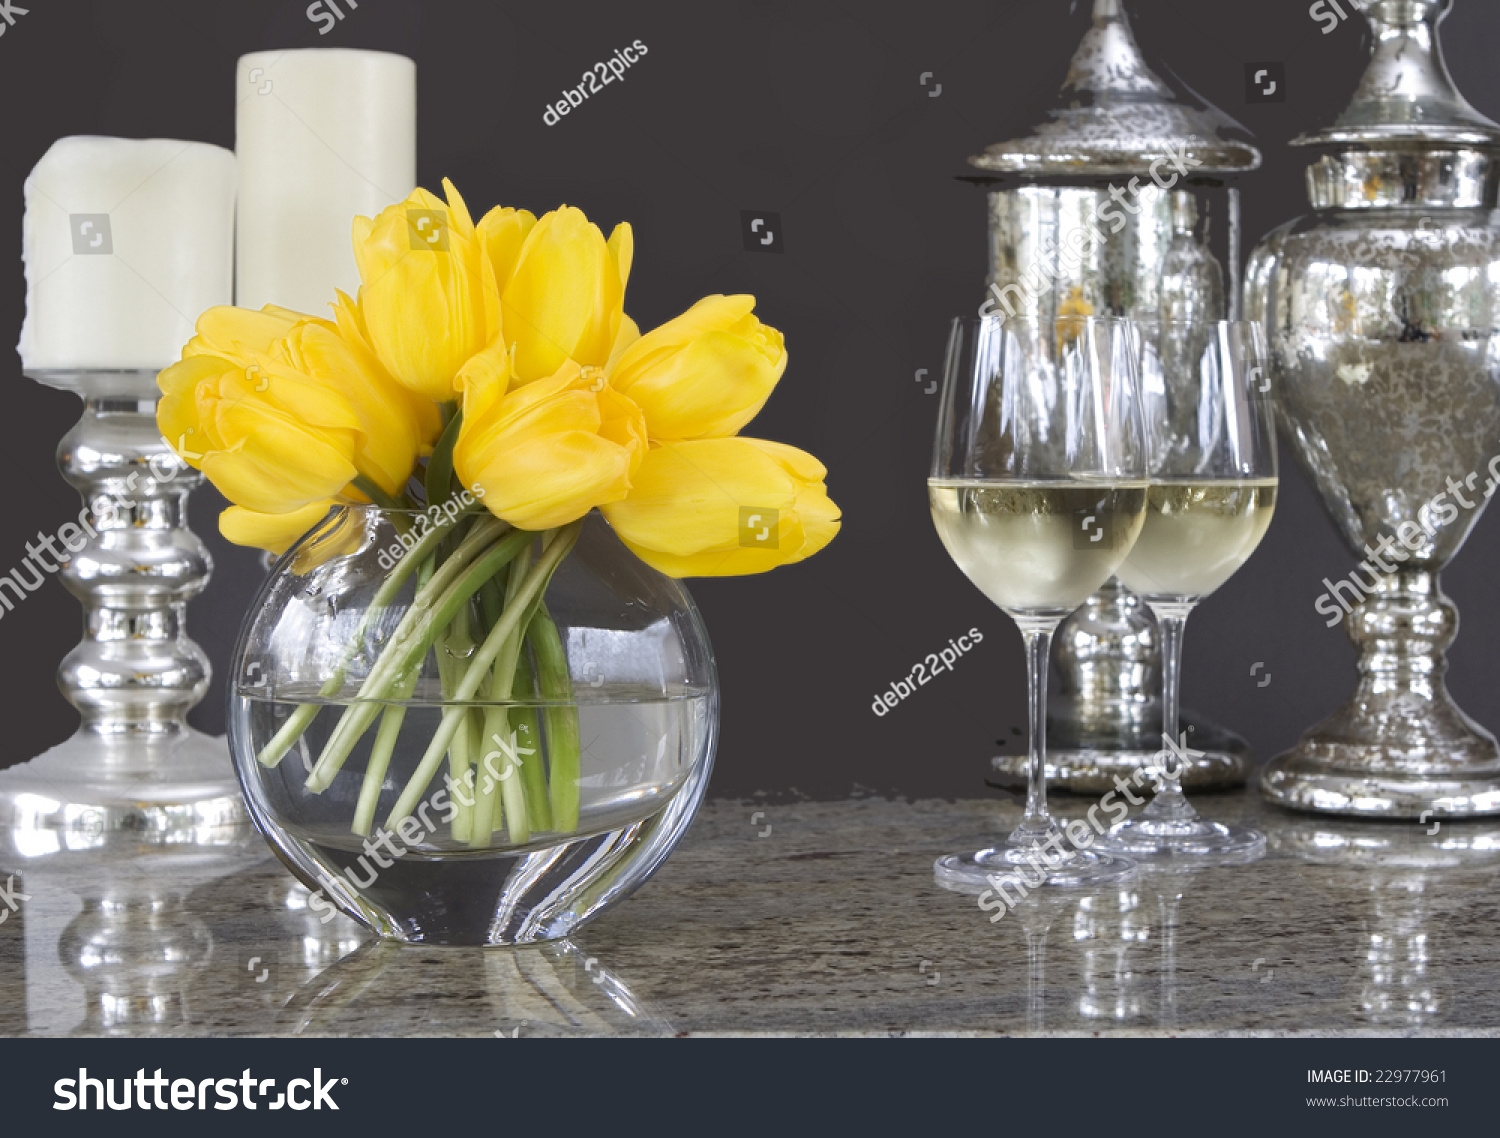 Yellow Tulips In Vase With Glasses Of Wine Home Decor Accessories Elegant Tablescape